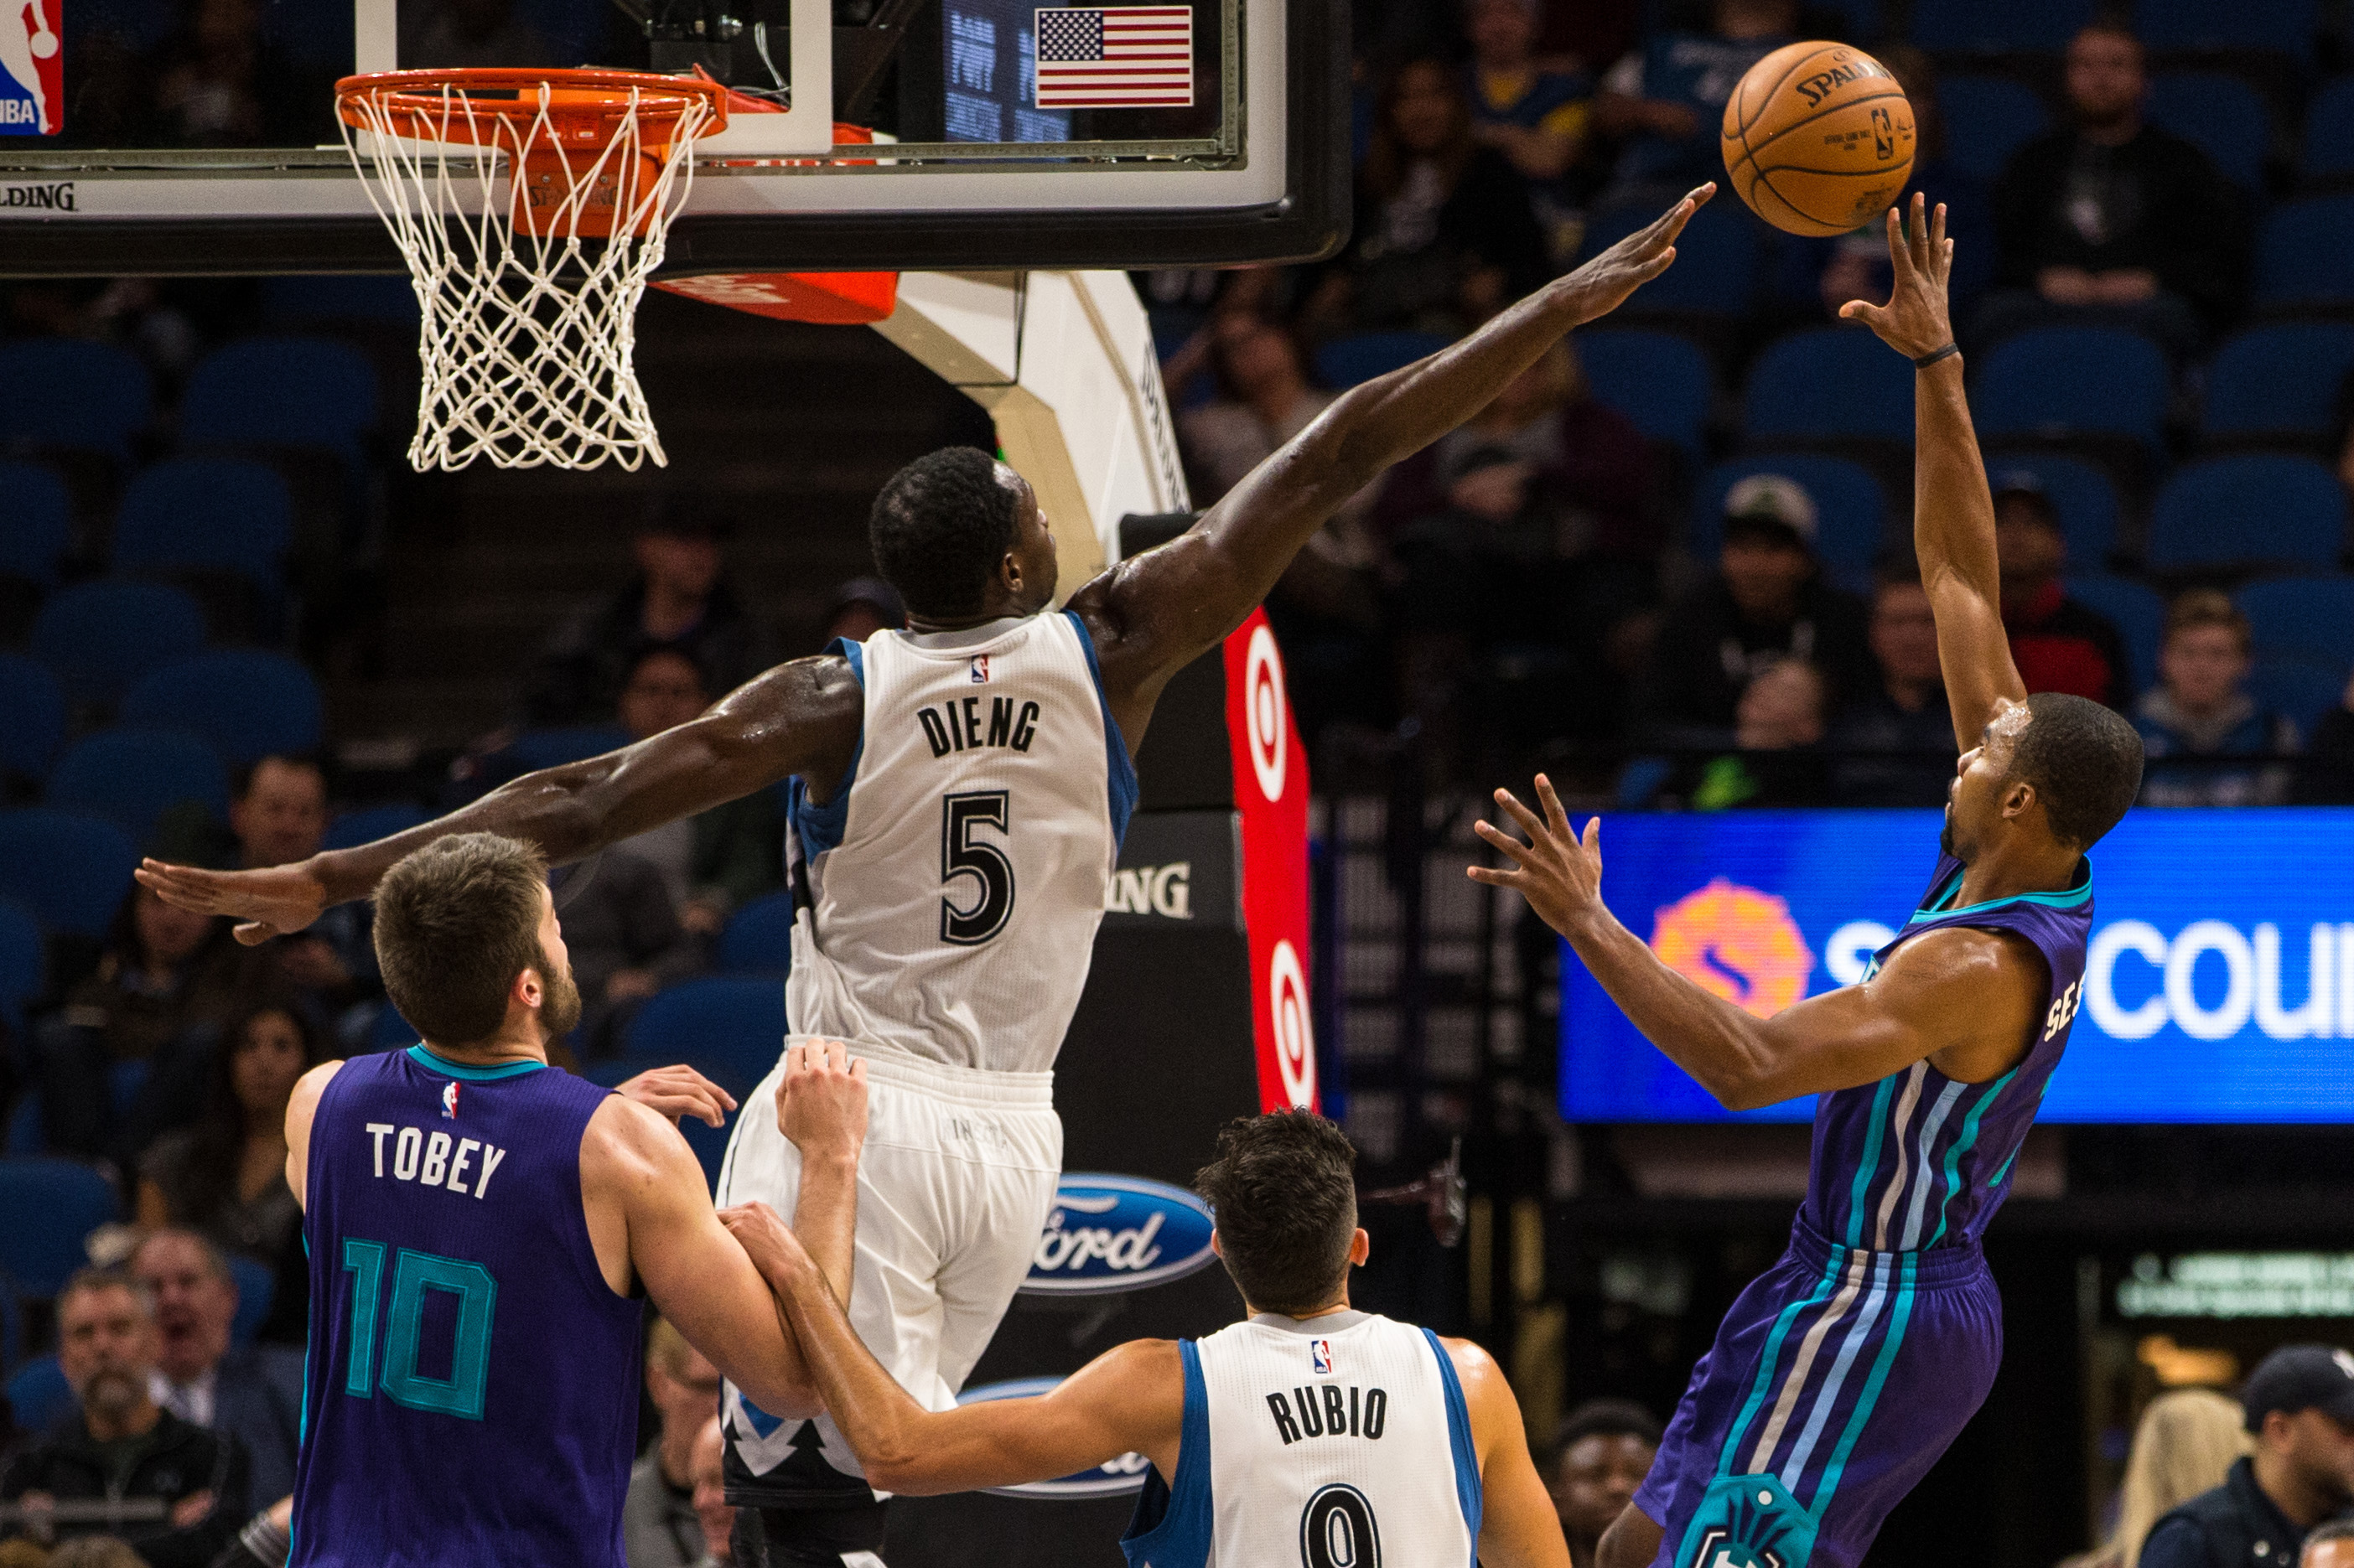 For Wolves' Gorgui Dieng, $64M was the right price to stay